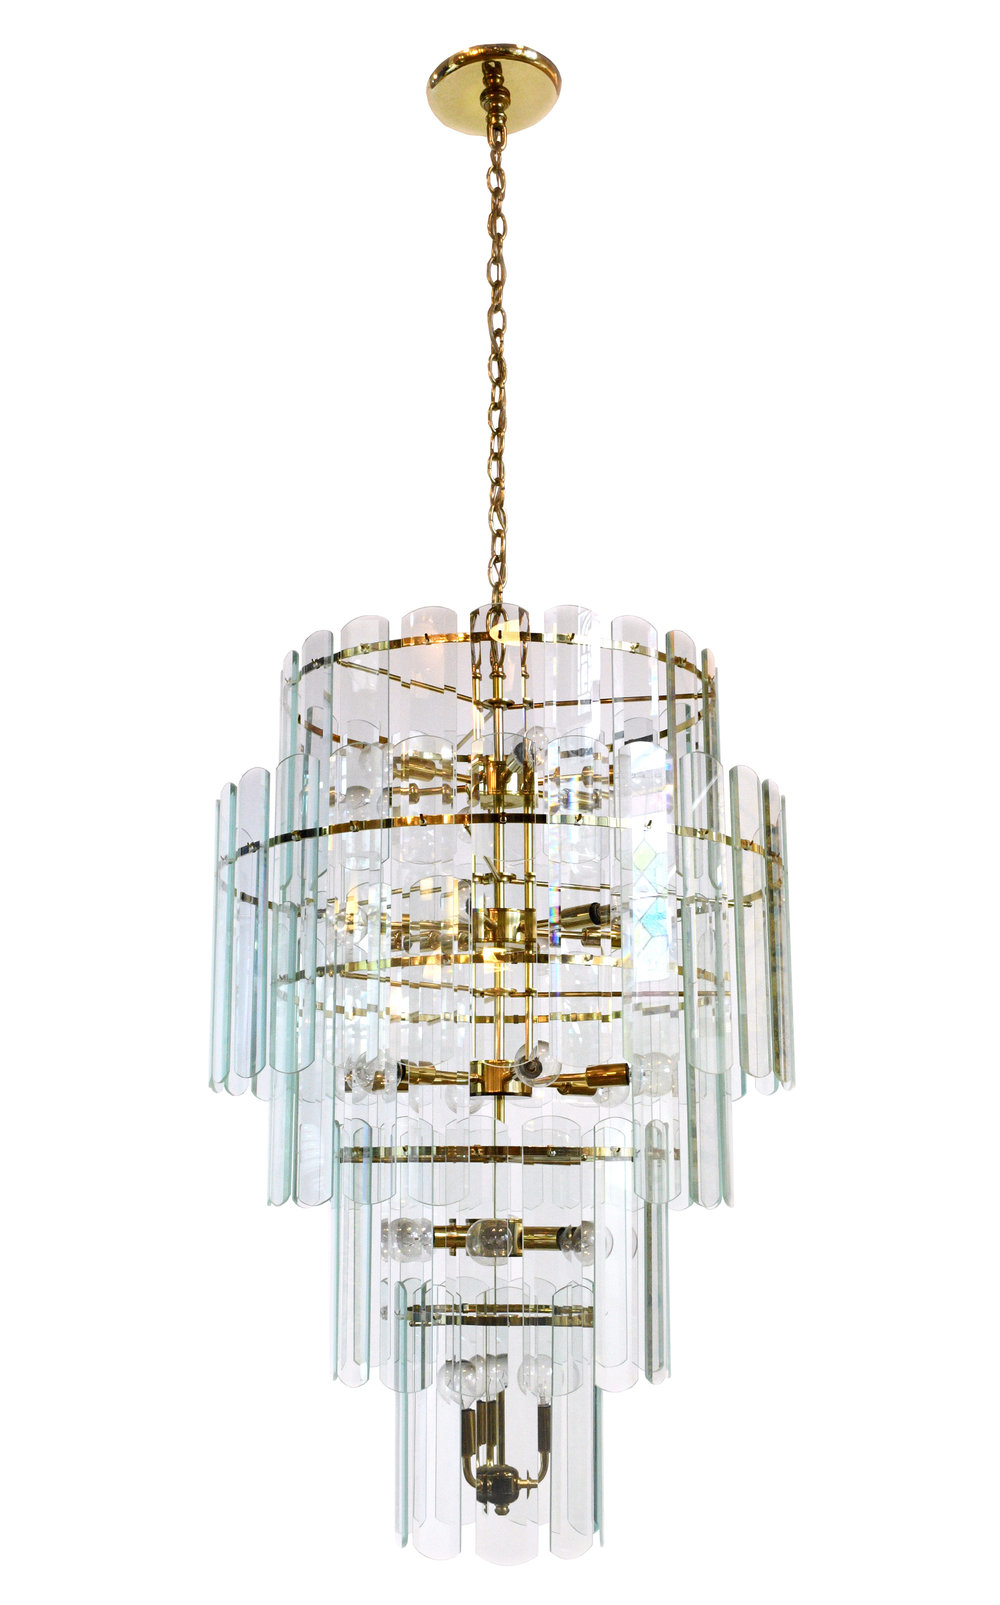 47630 Tall Brass Glass Chandelier Full View Jpg